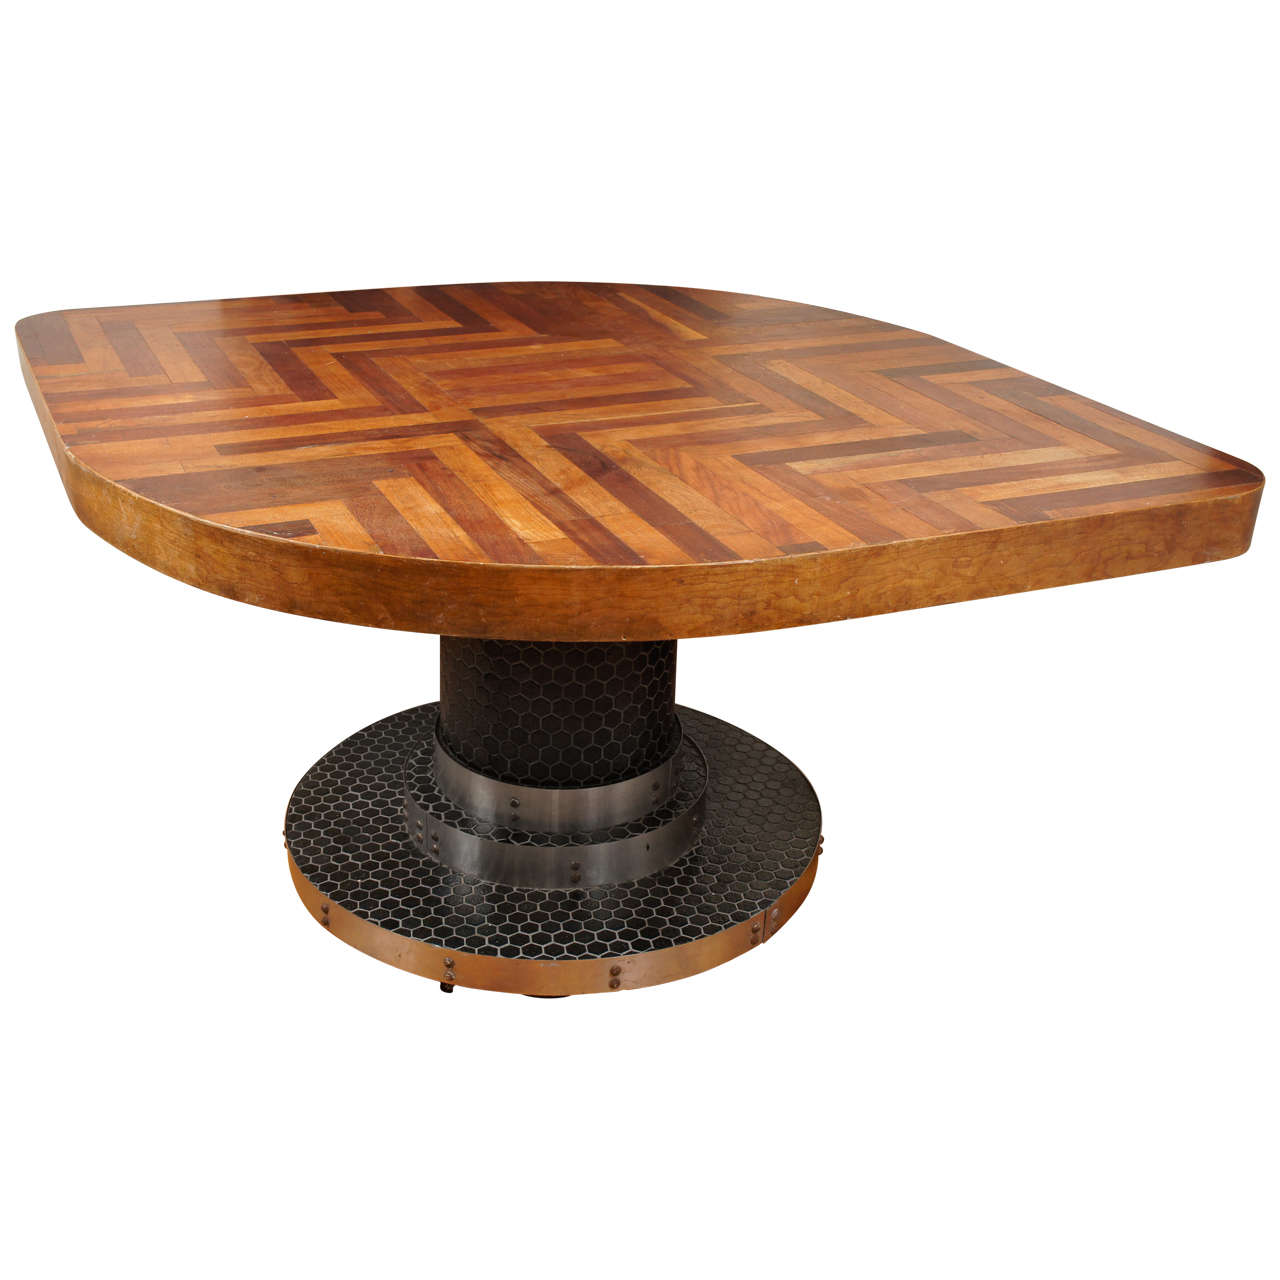 Extending Circular Dining Table Images Light Oak Round  : X from gotpinecones.com size 1280 x 1280 jpeg 86kB